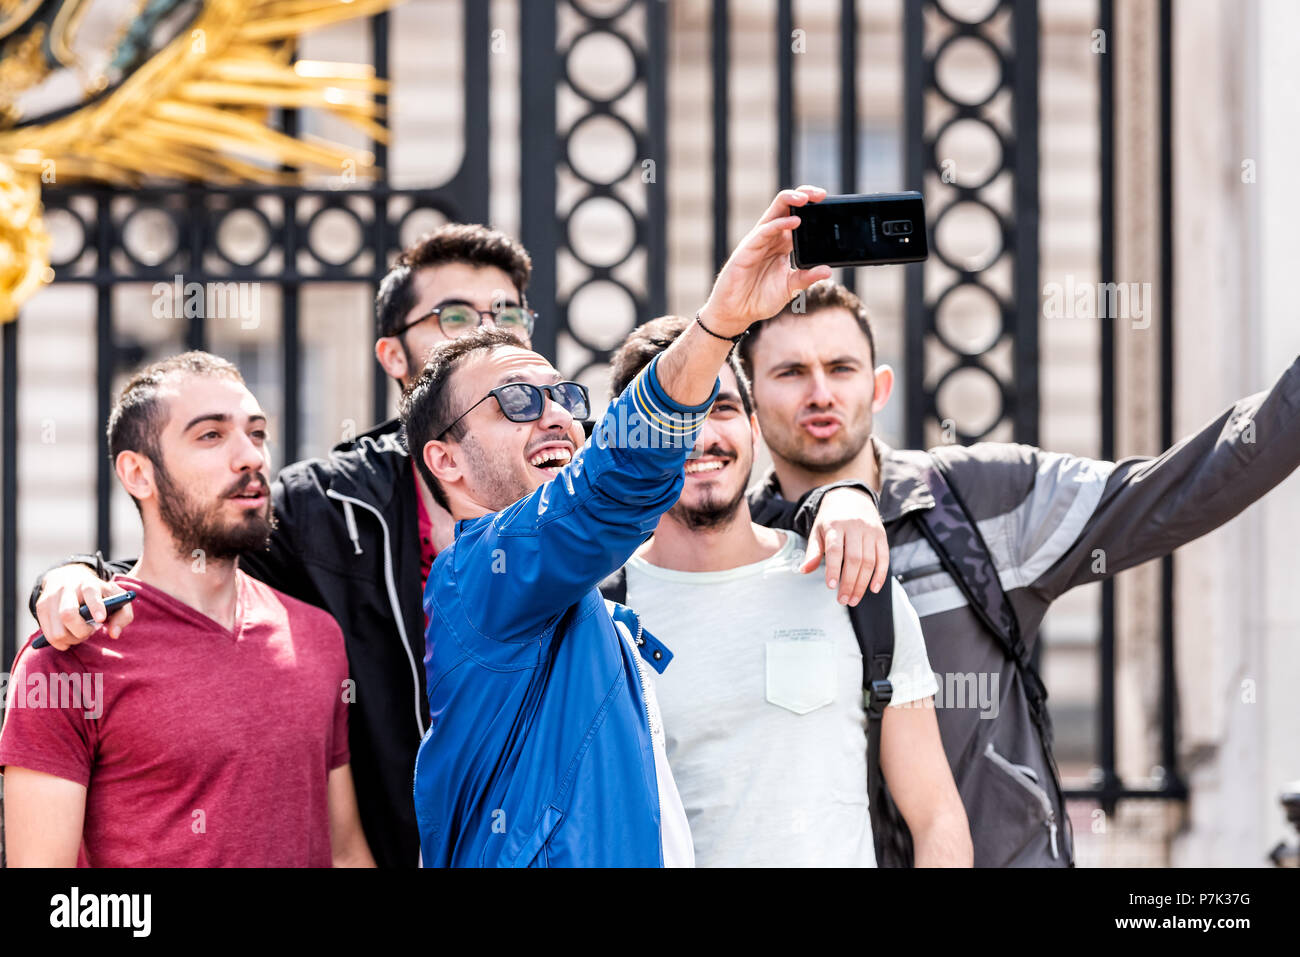 London, UK - June 21, 2018: Group of young men male faces friends standing taking happy selfie smiling and laughing in front of Buckingham Palace clos - Stock Image